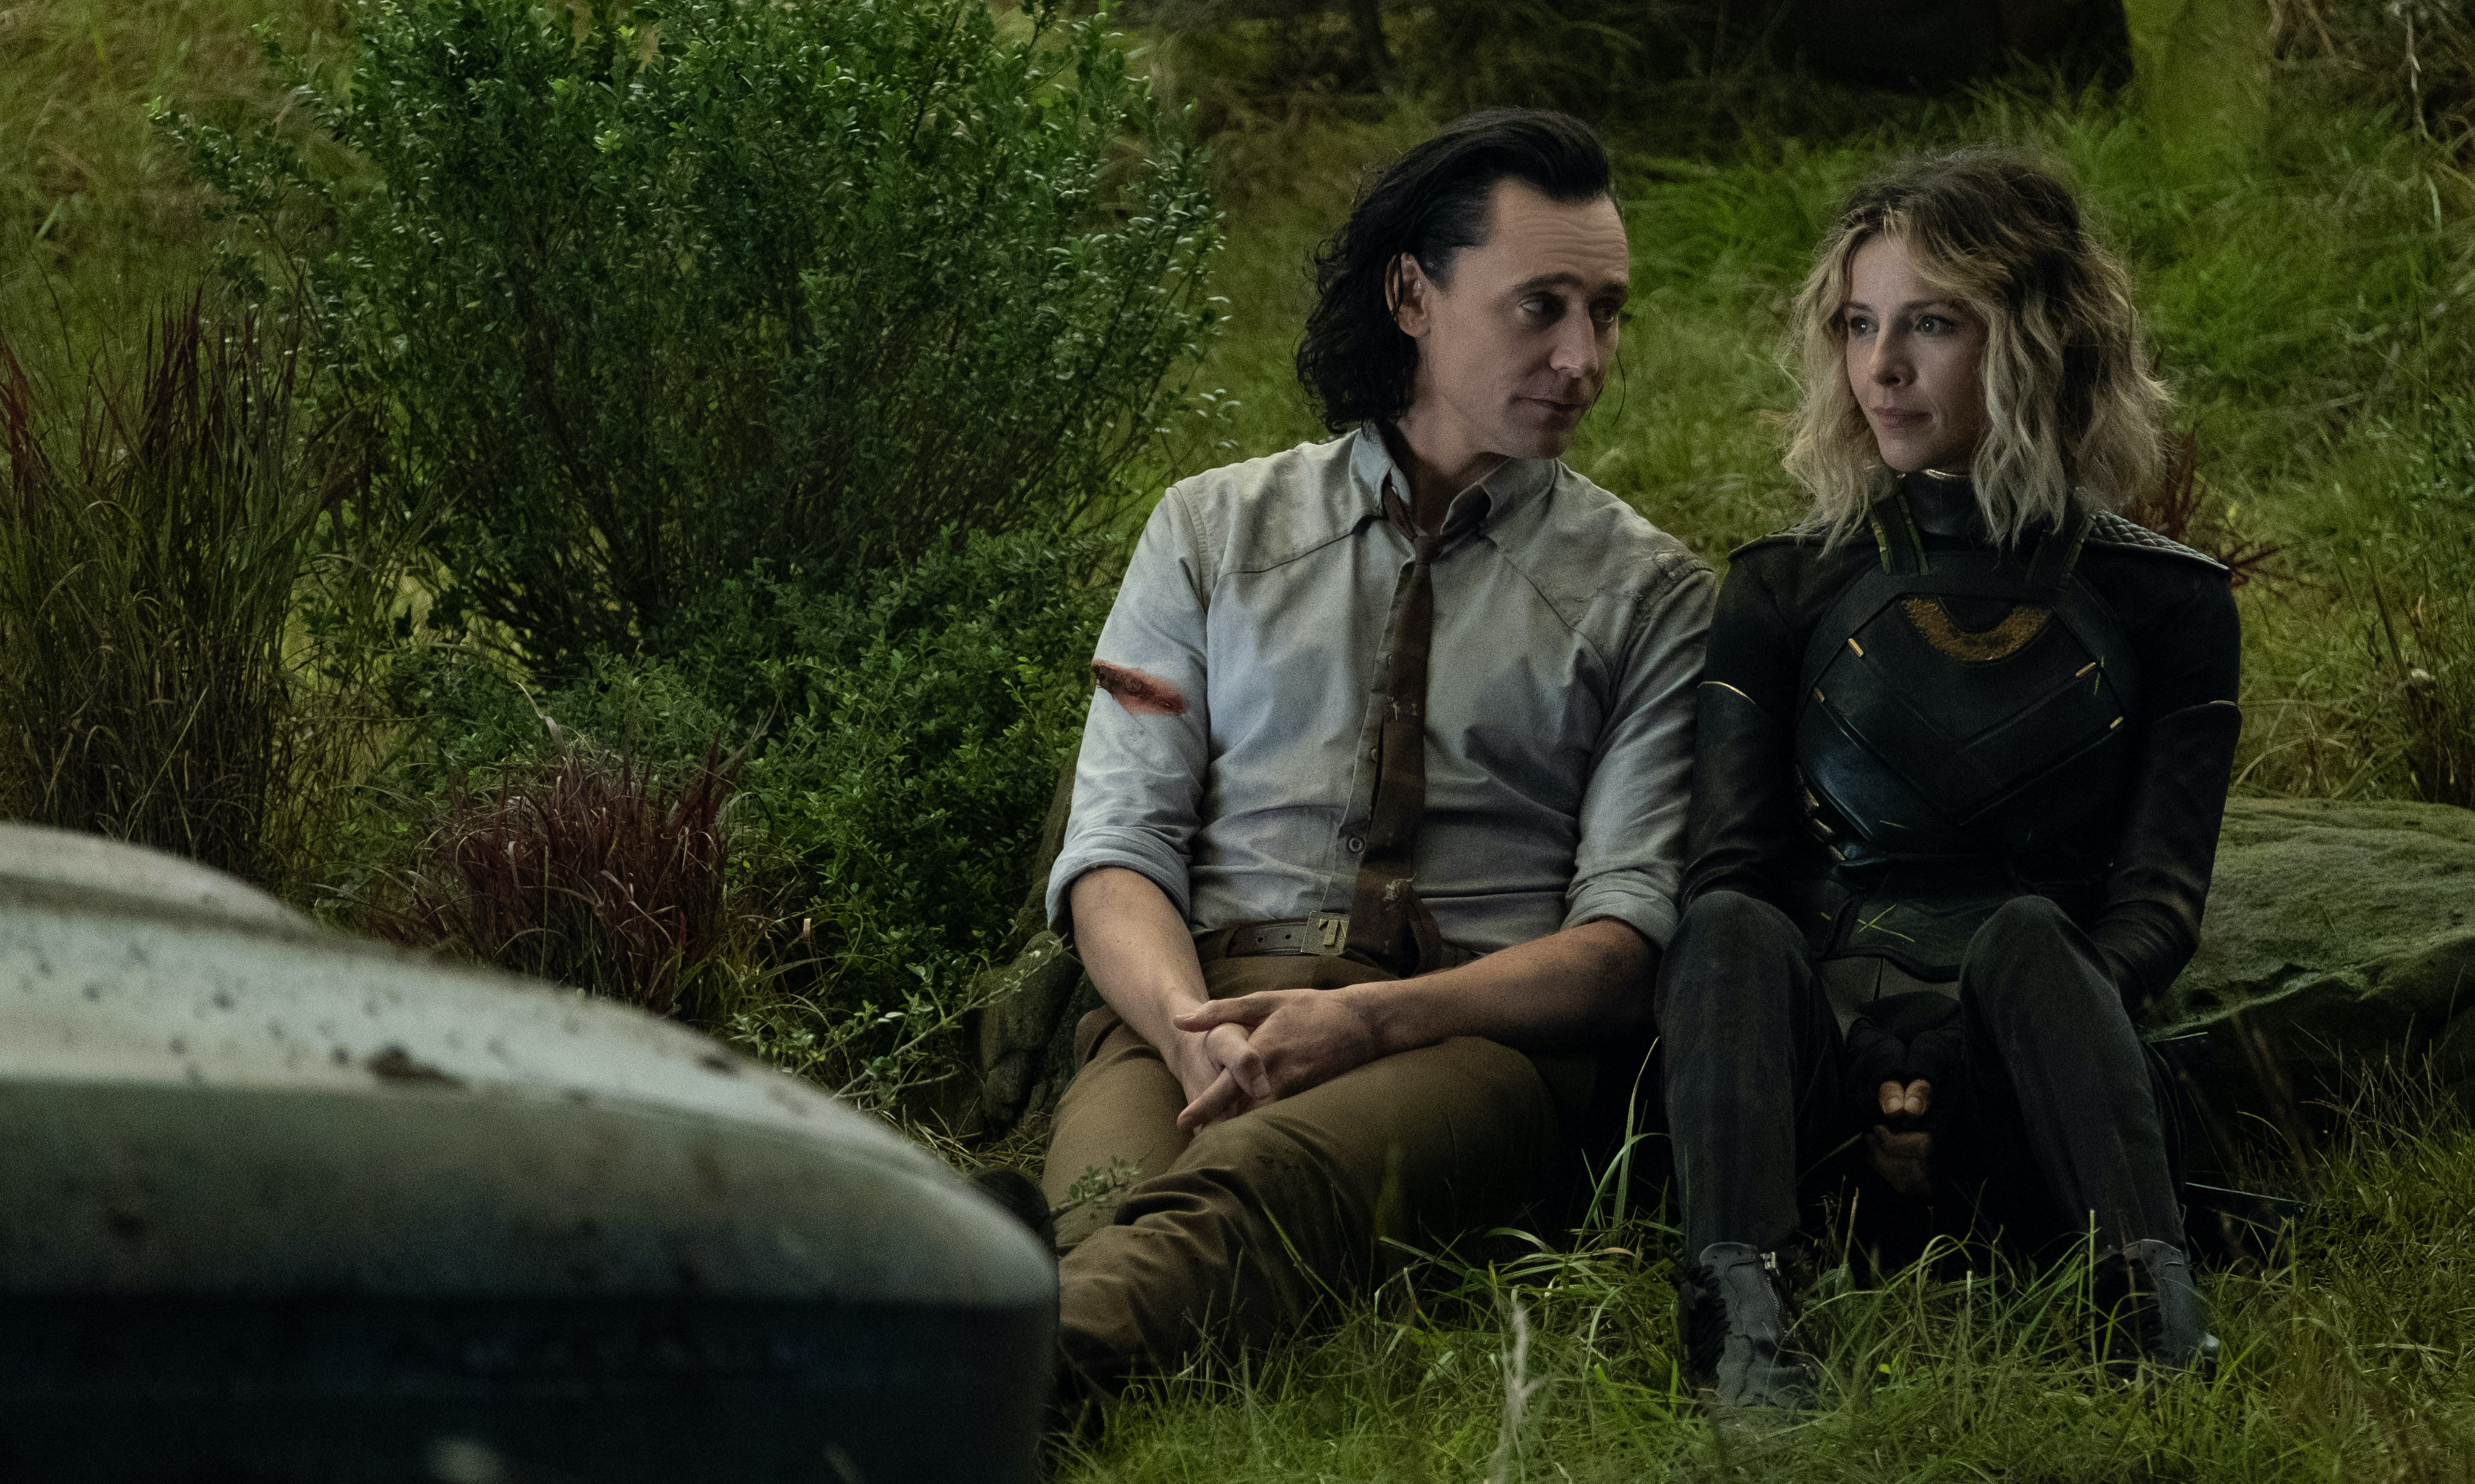 TomHiddleston and Sophia Di Martino sit side by side in the grass in Loki